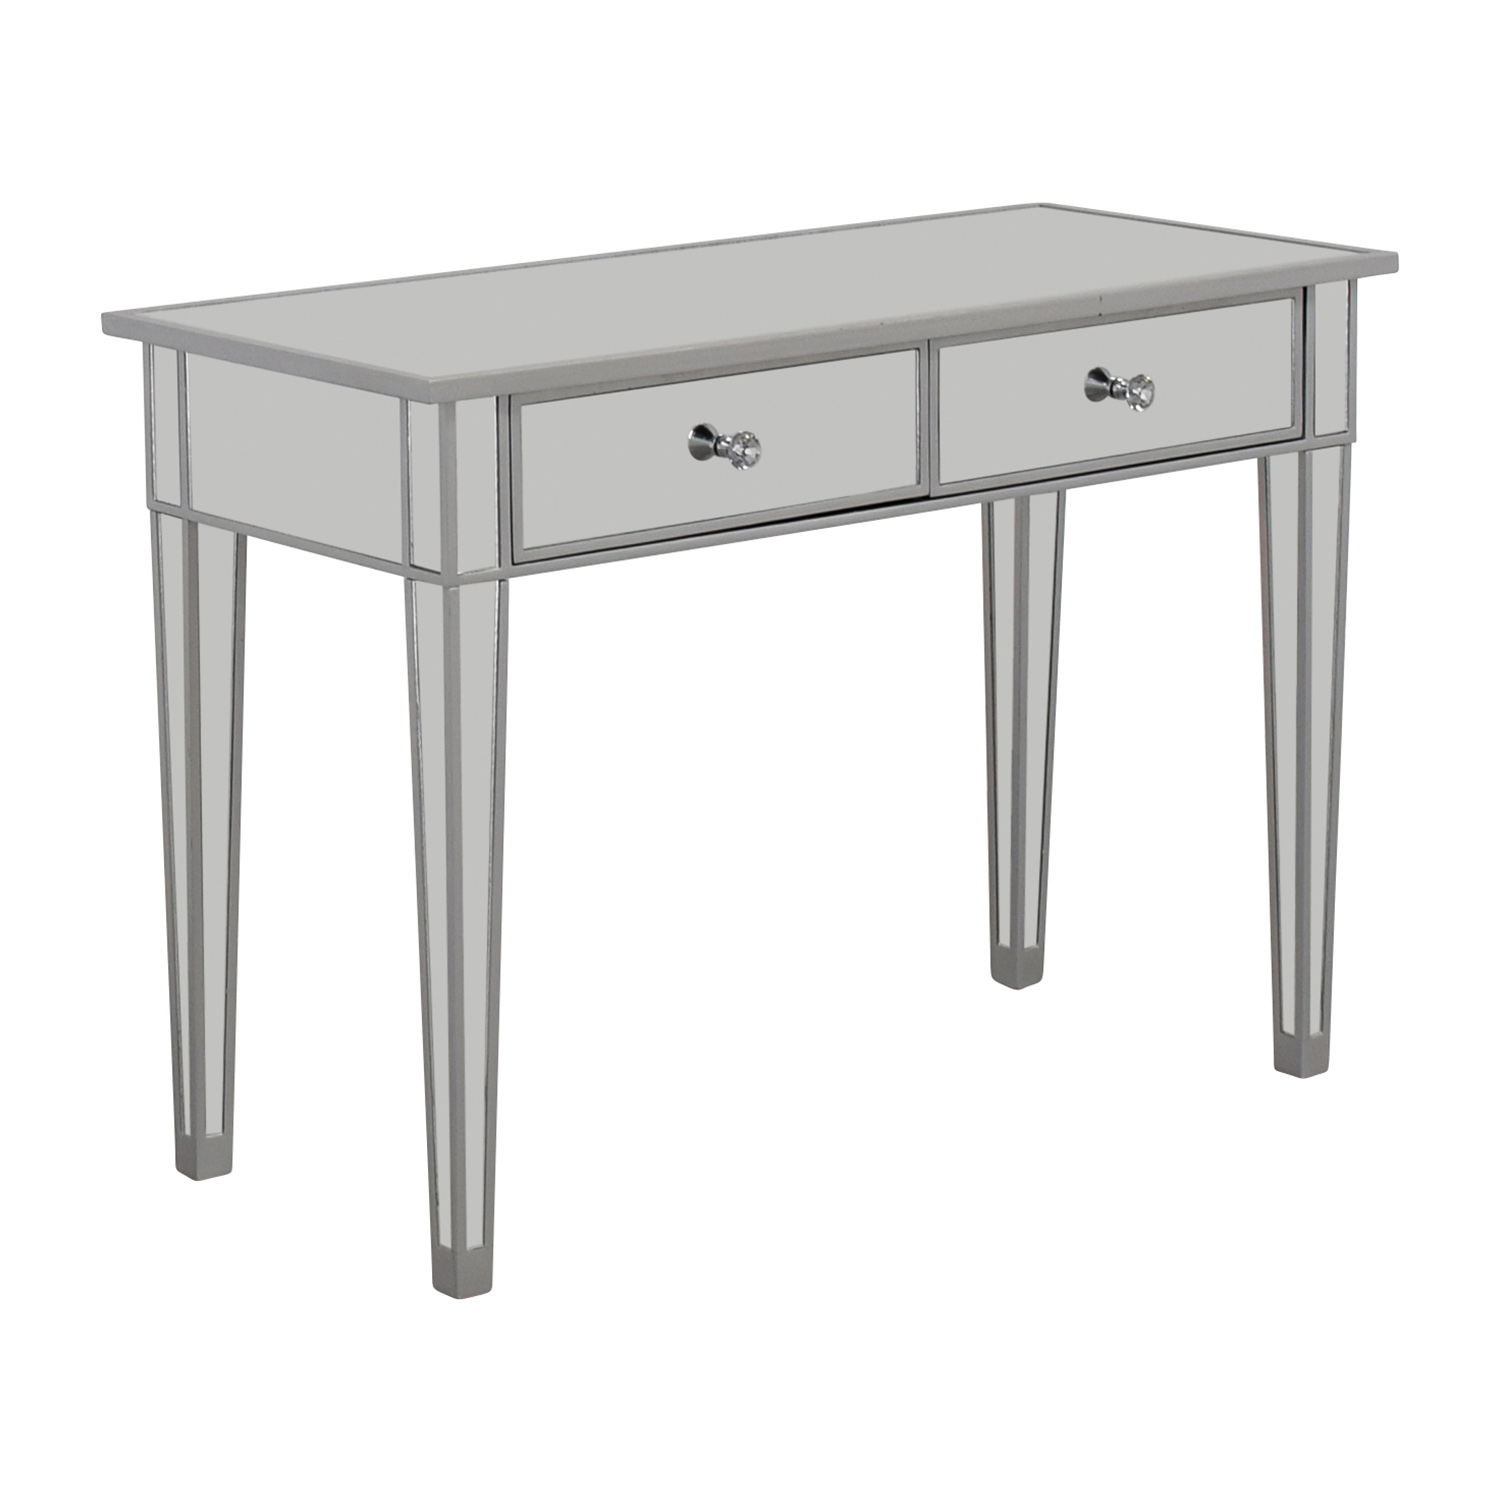 45 off wayfair wayfair two drawer mirrored vanity tables for Wayfair mirrored coffee table